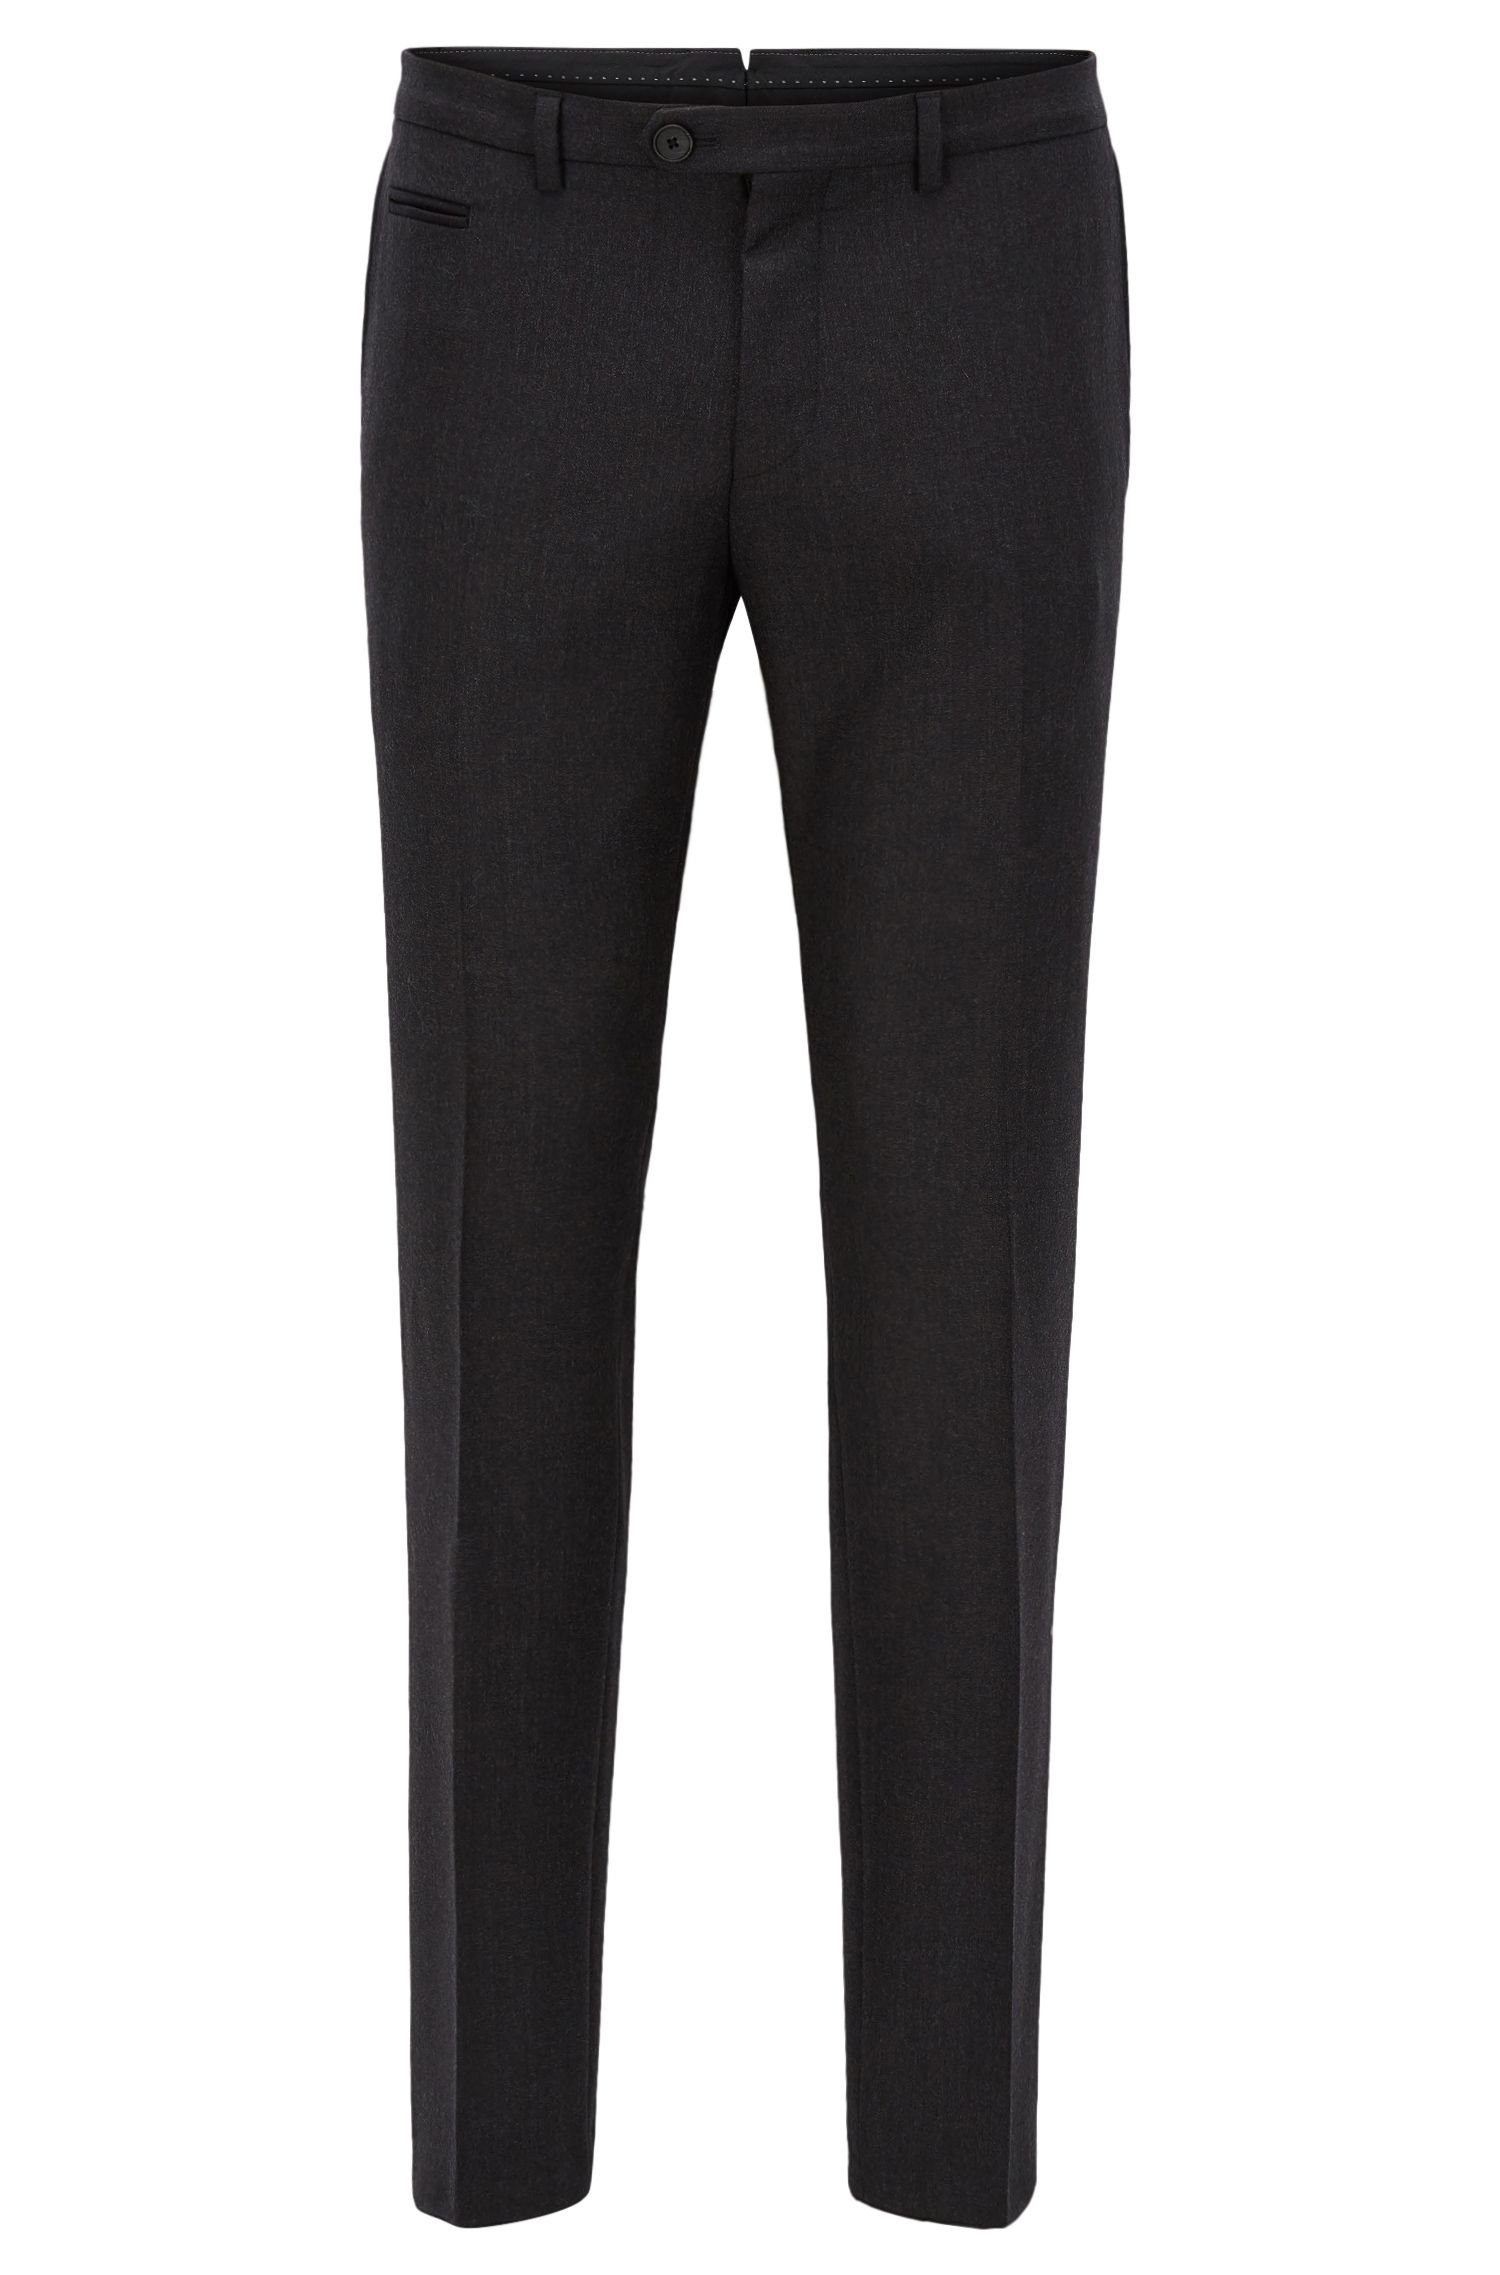 Pantaloni extra slim fit in lana vergine